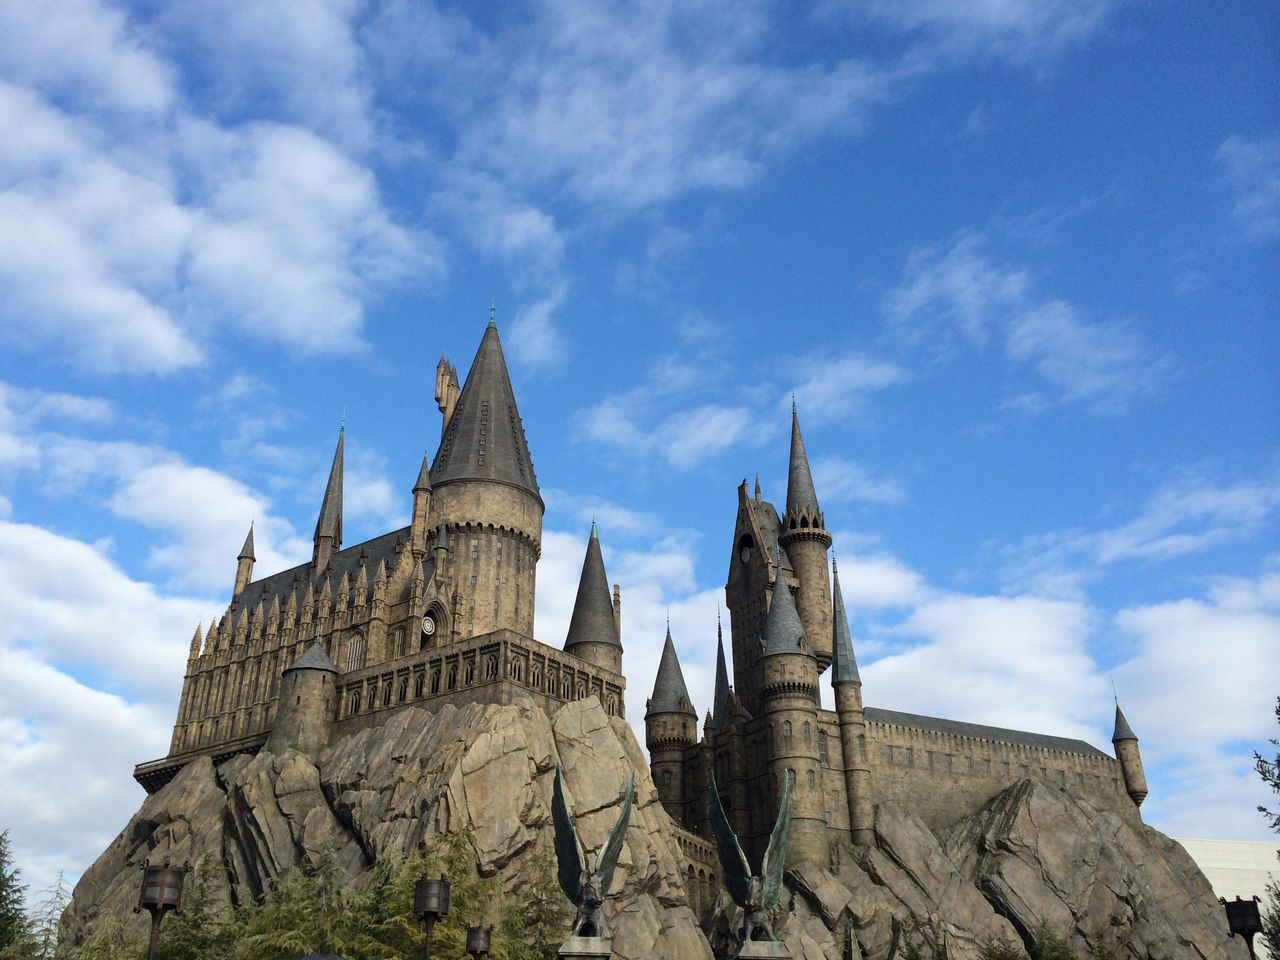 ハリーポッター USJ In Osaka USJ Harrypotter Harry Potter ⚡ Harry Potter ❤ Harry Potter Castle